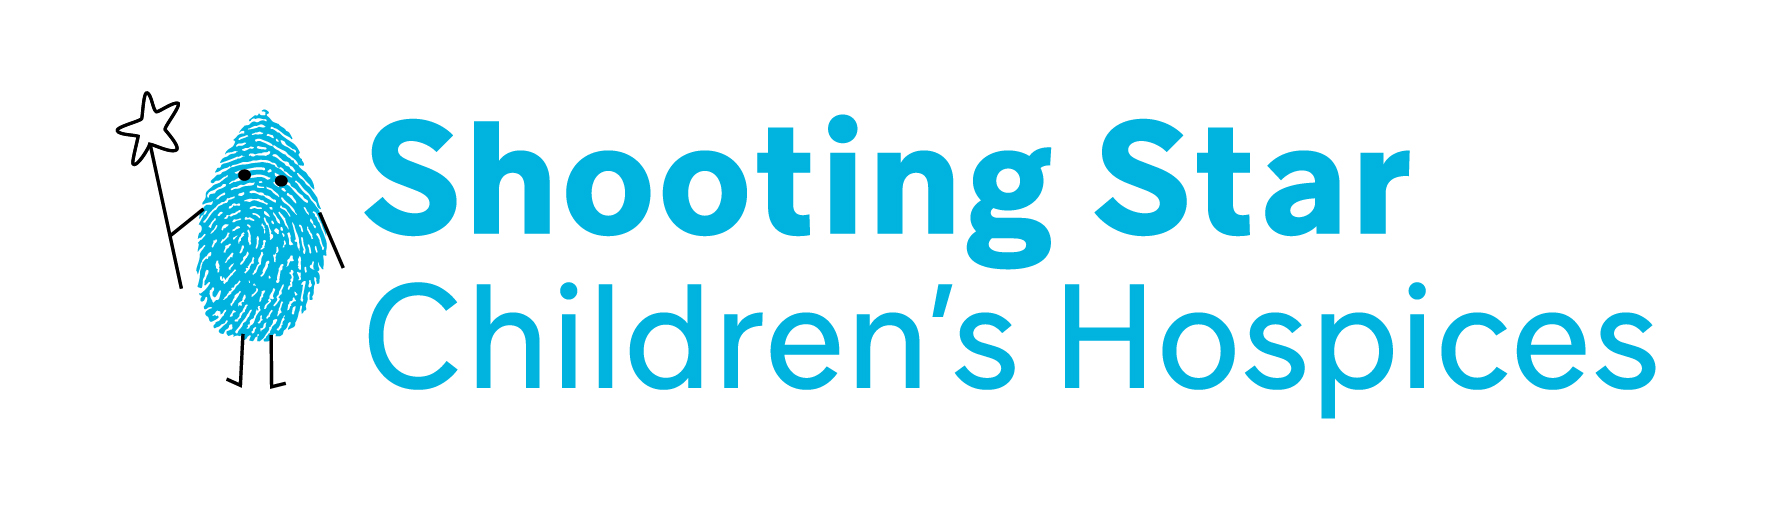 Shooting Star Children's Hospices